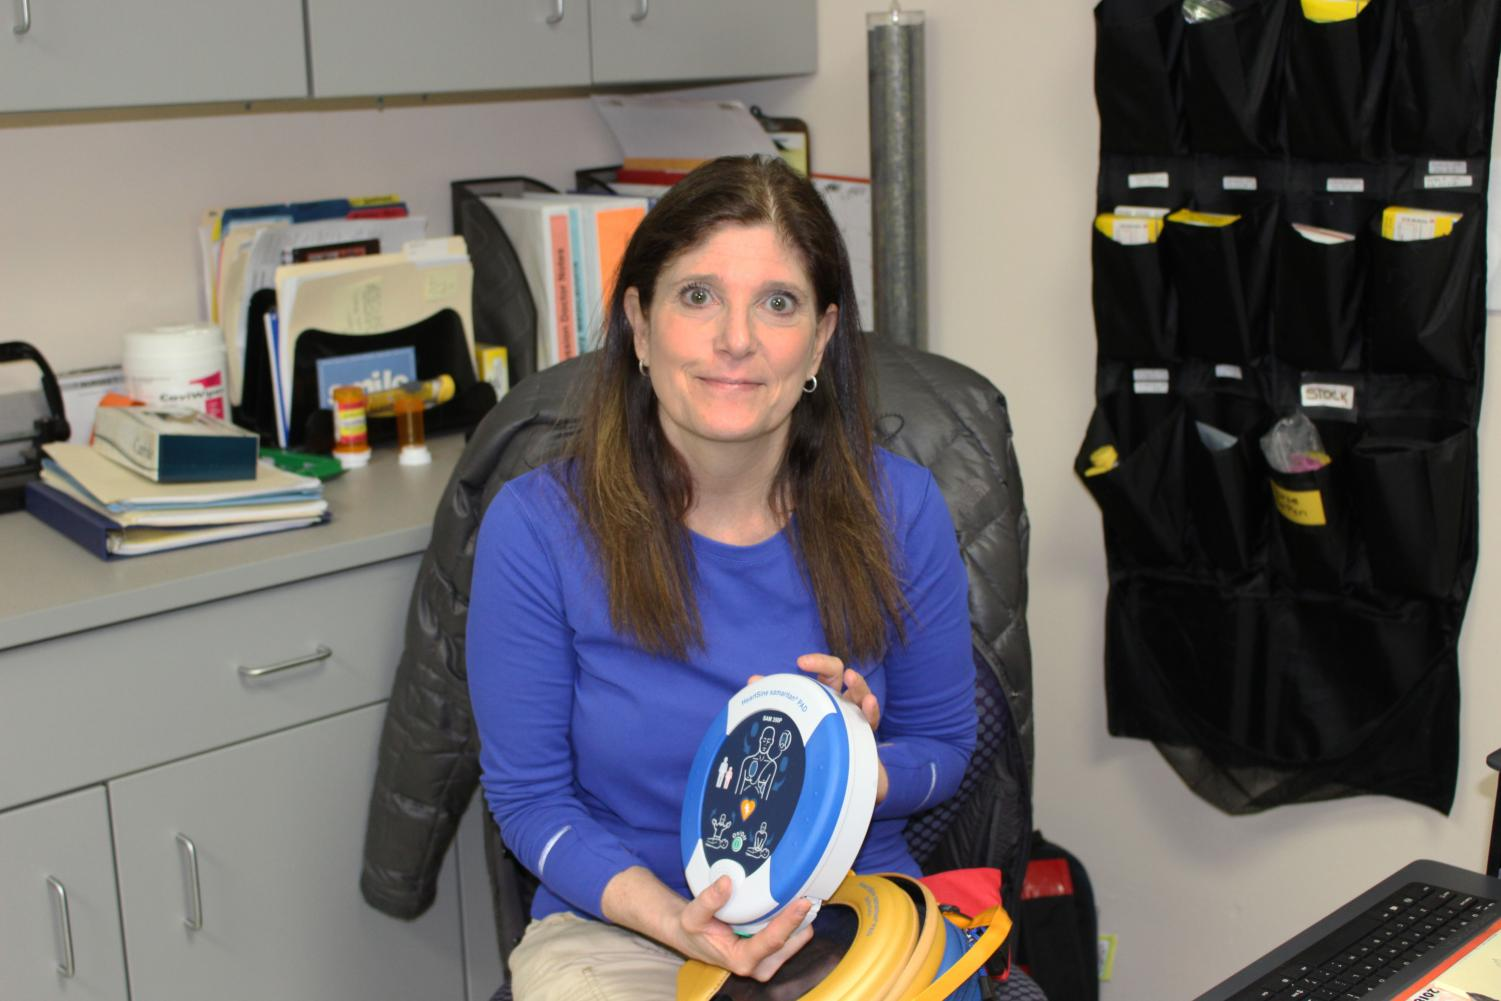 Ms. Alisa Wasserman, one of the school's nurses, holds an Automated External Defibrillator, which is used to help revive victims of cardiac arrest.